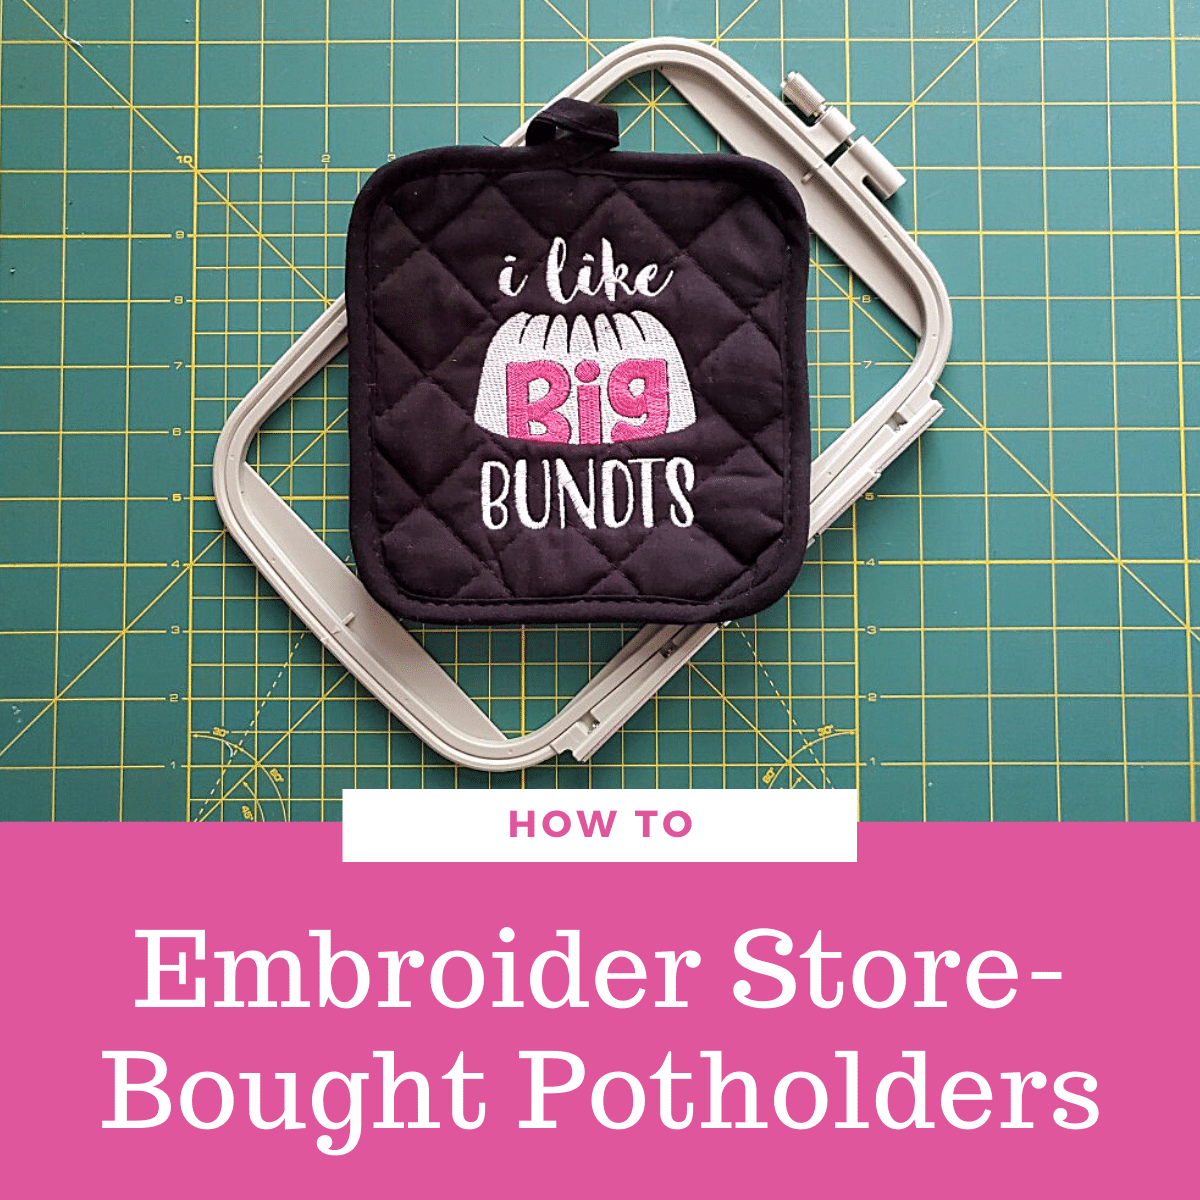 How to Embroider a Store-Bought Potholder